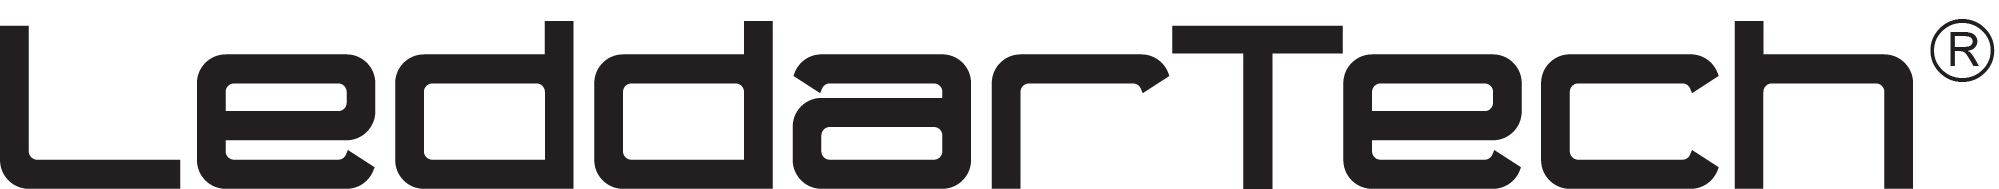 LeddarTech Acquires VayaVision to Accelerate the Delivery of its Comprehensive and Open Sensor Fusion and Perception Platform for the Automotive and Mobility Market